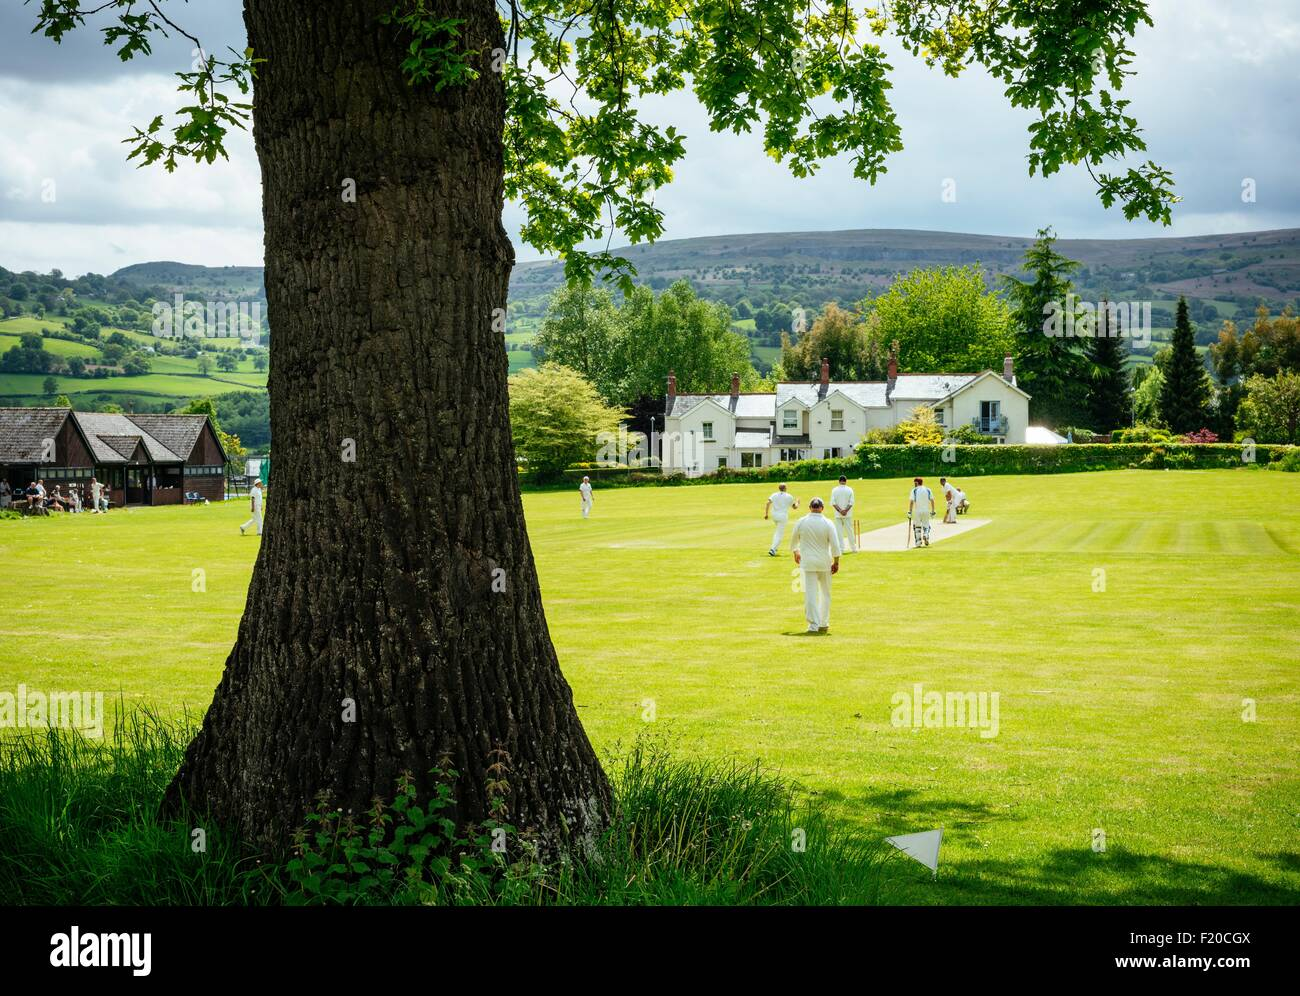 Cricket game, Crickhowell, Brecon Beacons, Powys, Wales, UK - Stock Image